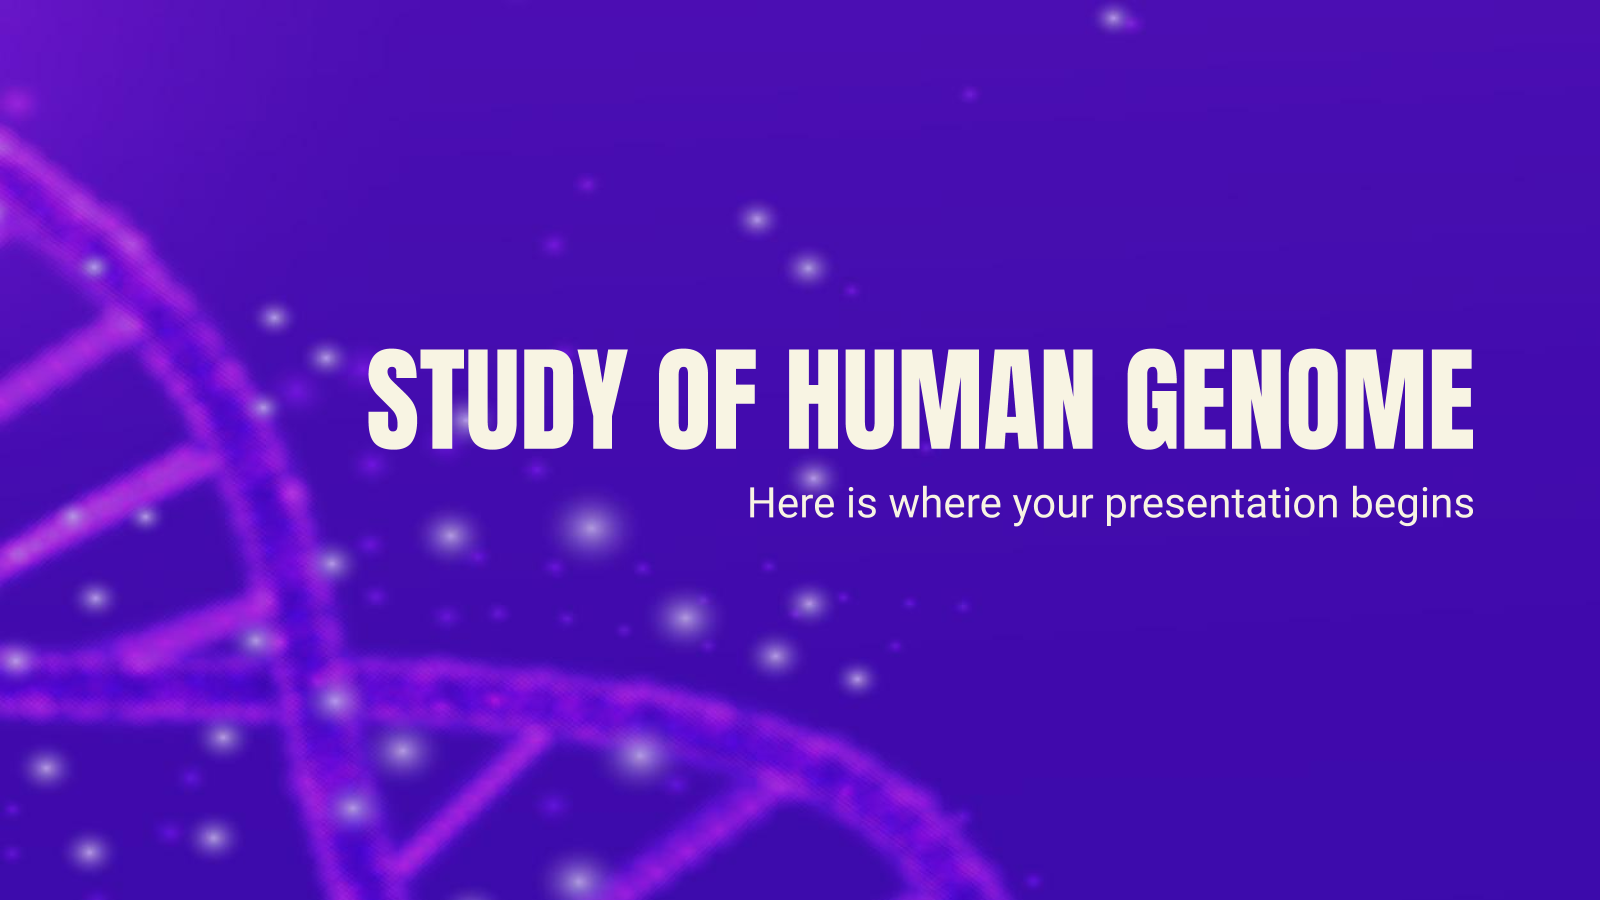 Study of Human Genome presentation template